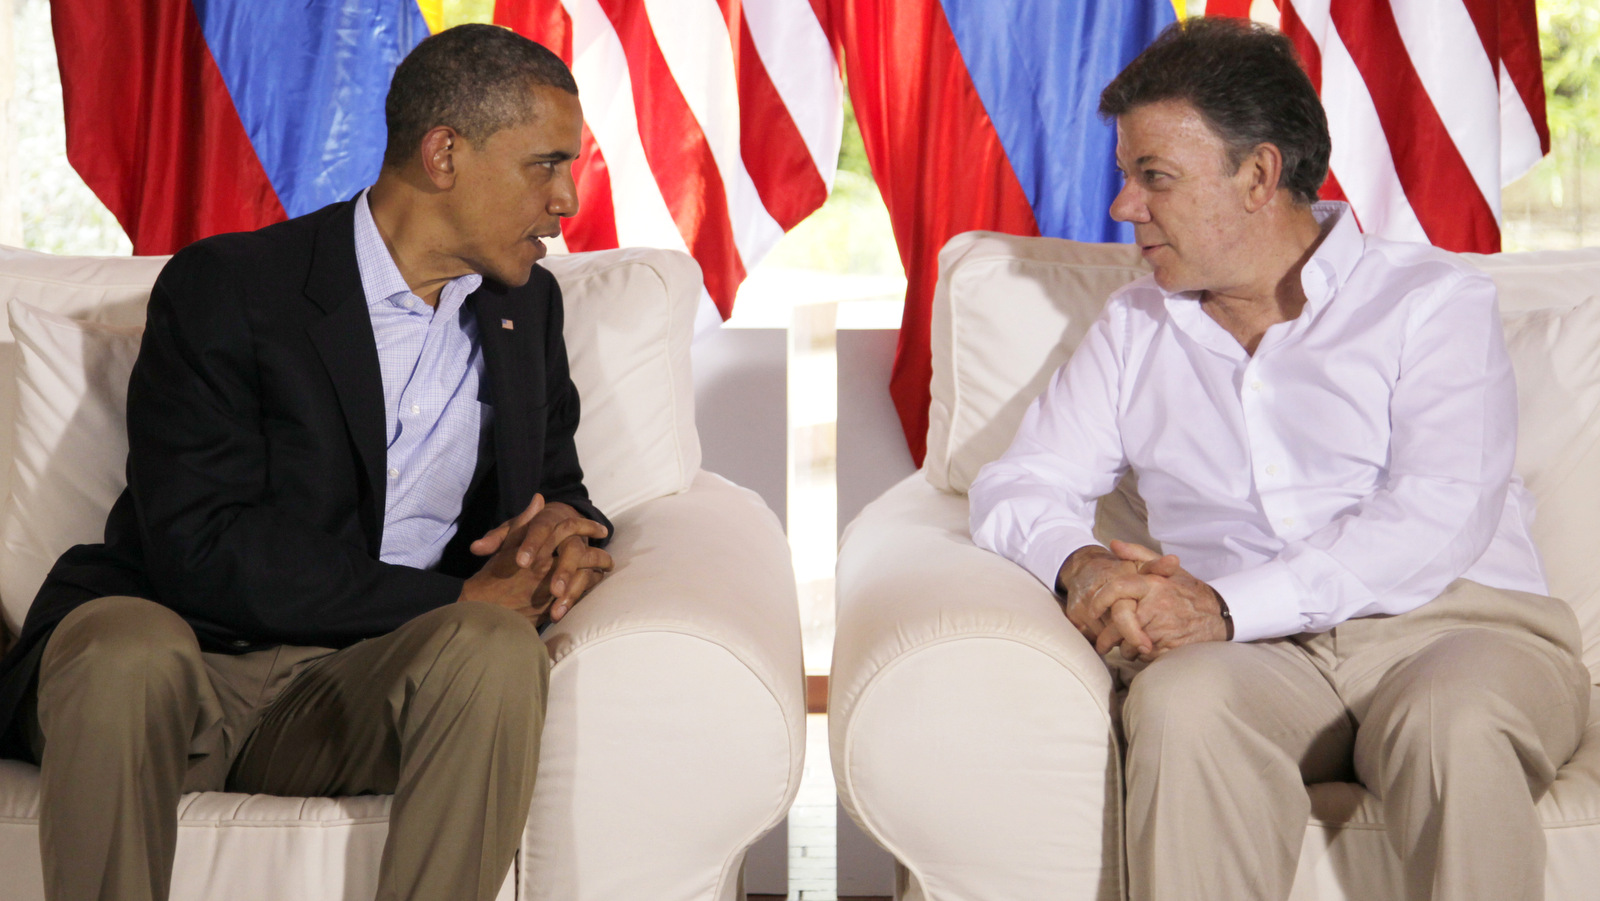 President Barack Obama, left, talks to Colombia's President Juan Manuel Santos before the start of their meeting at the Casa De Huespedes during the sixth Summit of the Americas, in Cartagena, Colombia, Sunday April 15, 2012. (AP/Carolyn Kaster)